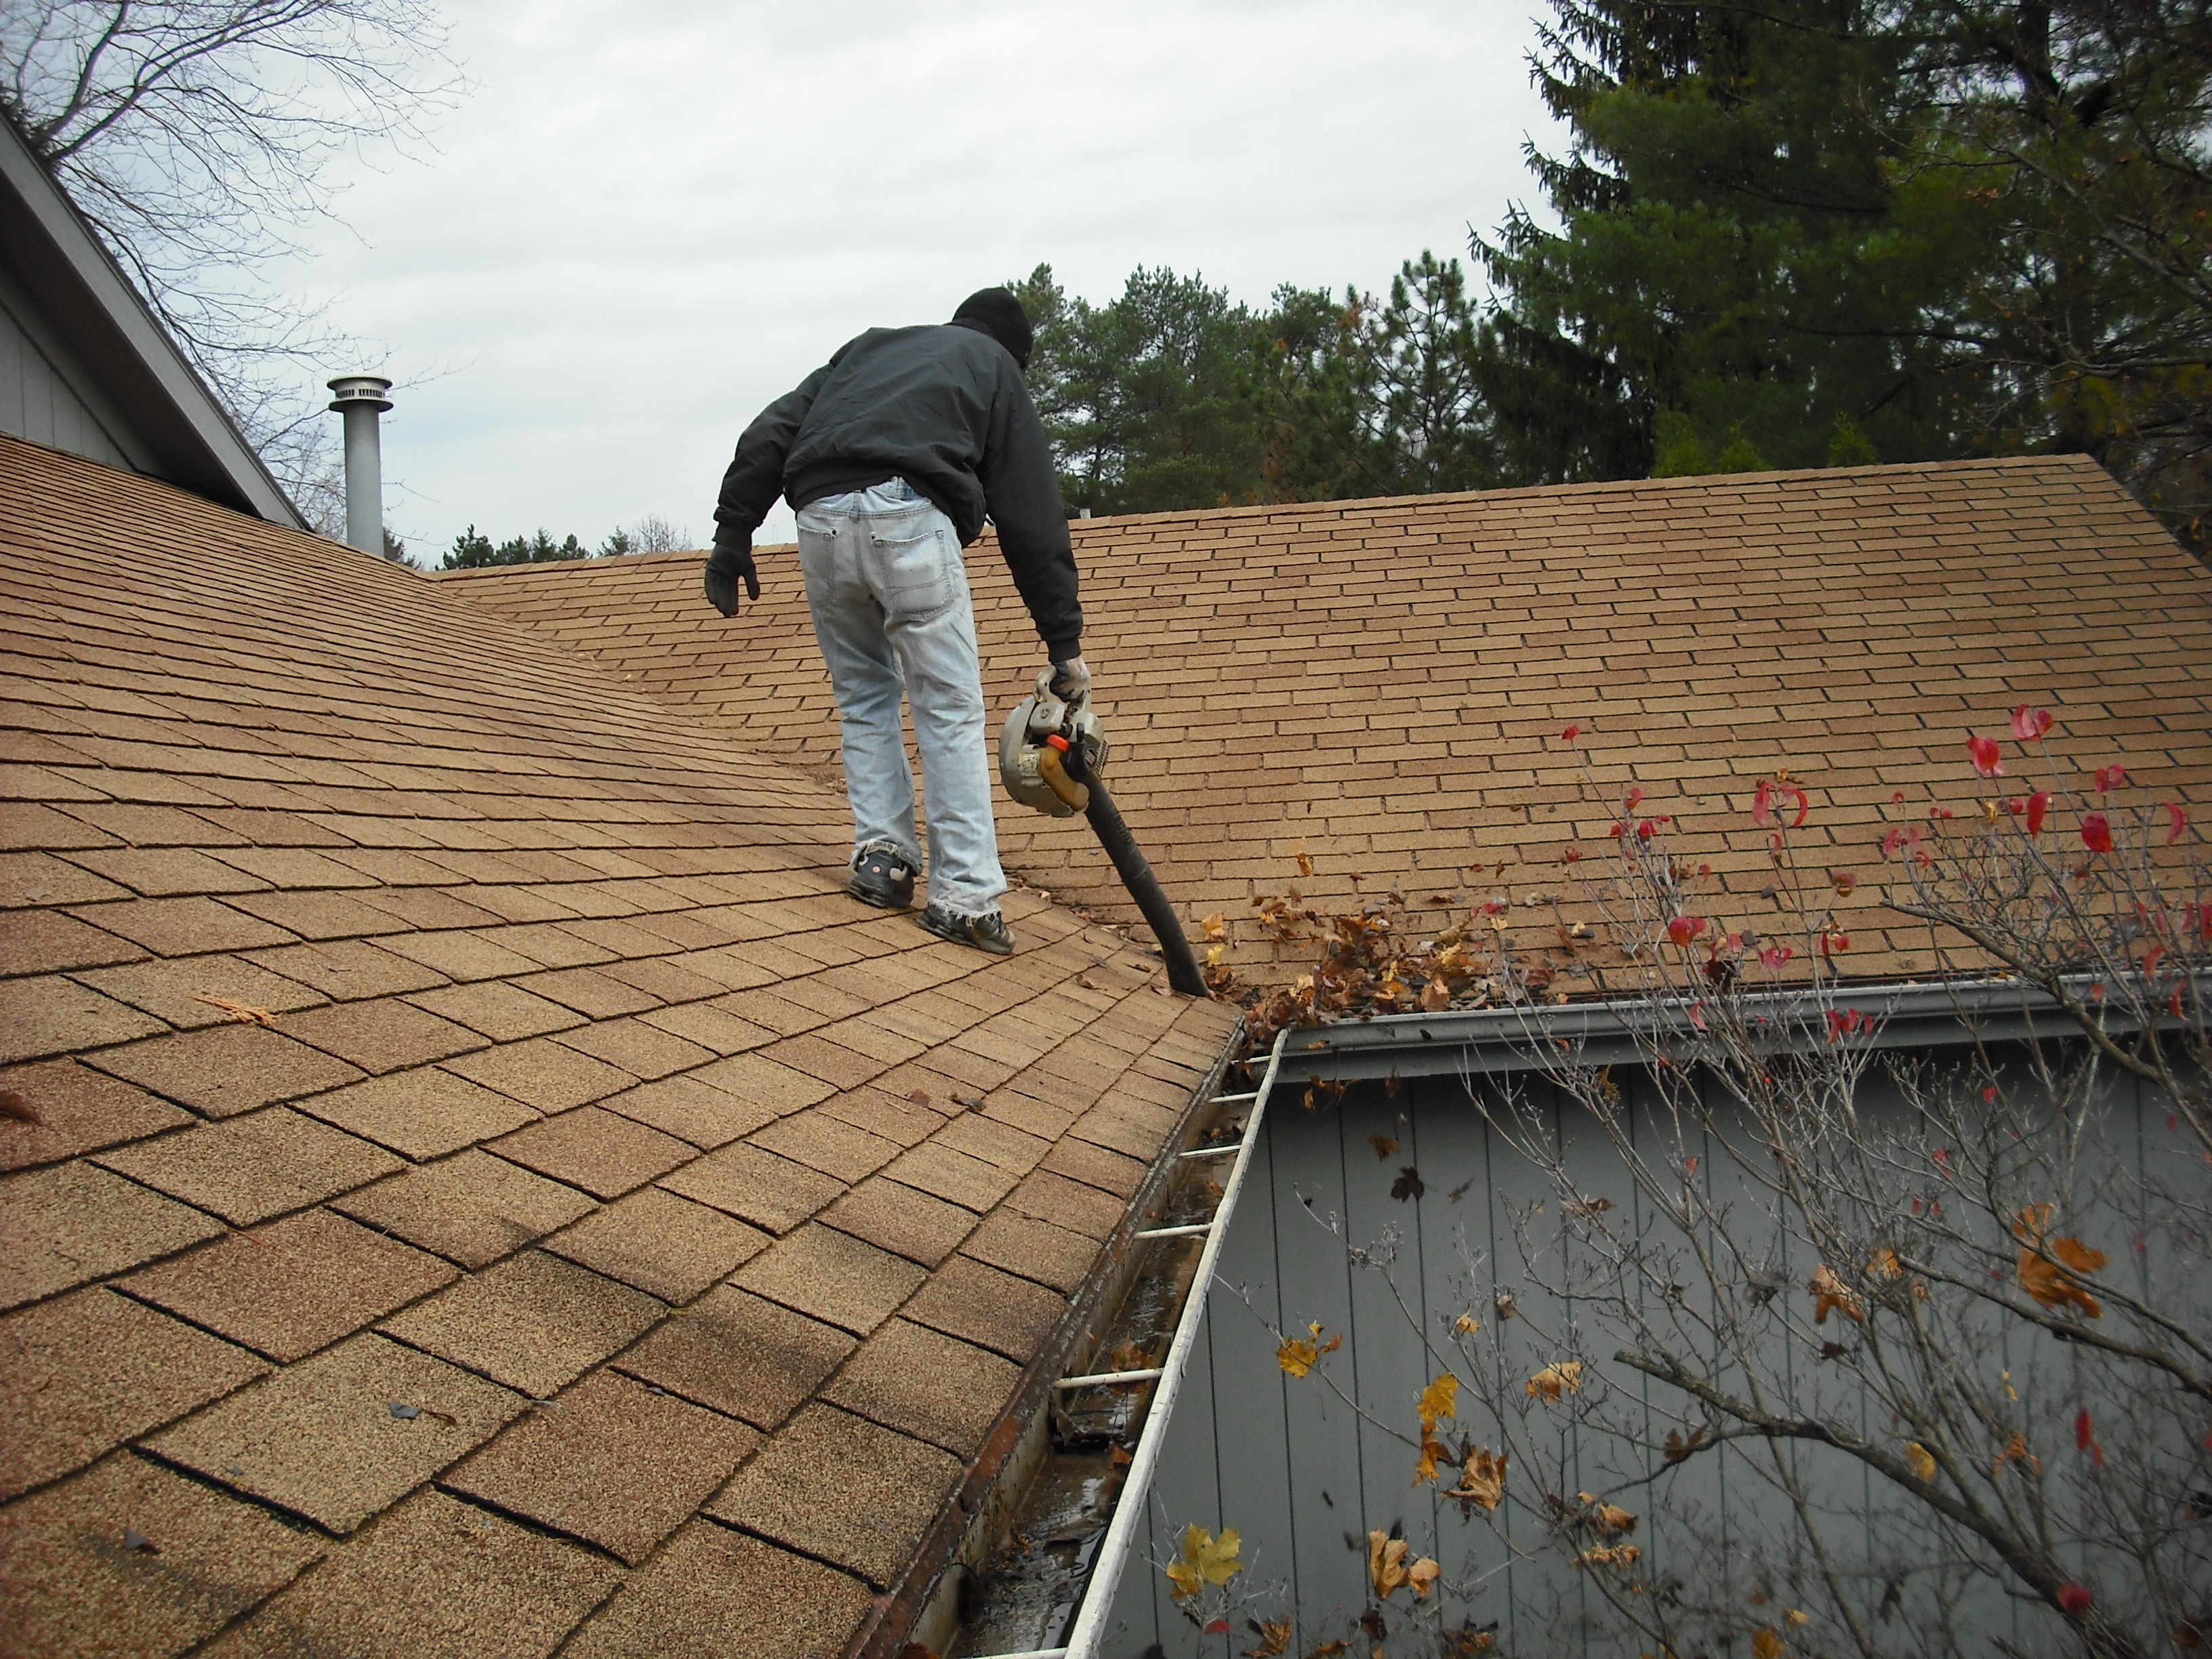 Protect Your Home with Help from an Expert Gutter Cleaning Service